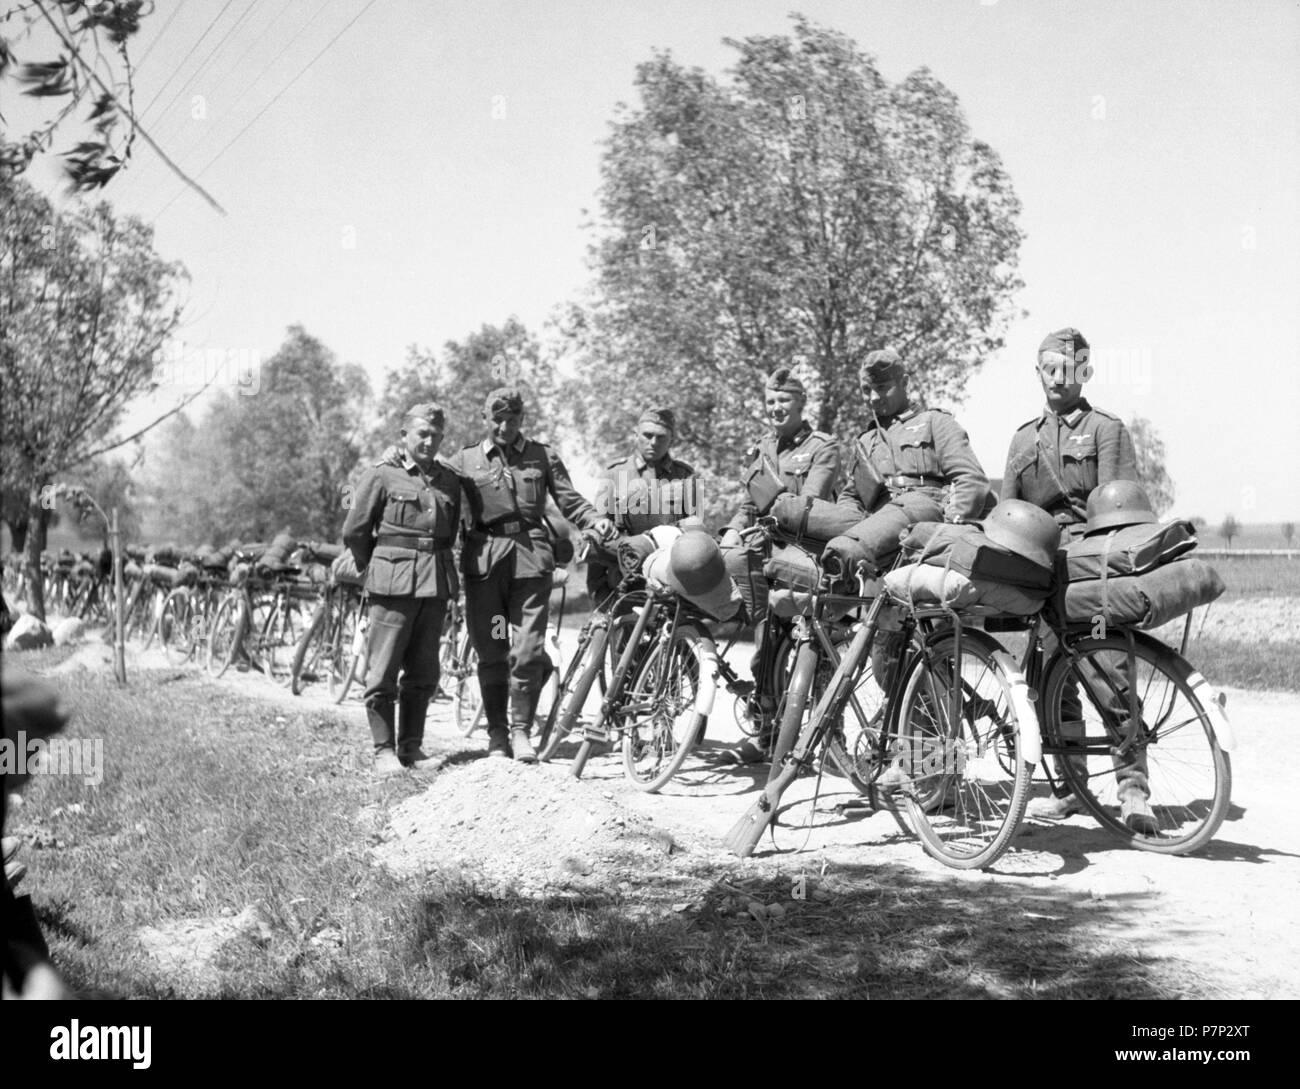 Approx. 1939,1941, training Wehrmacht, soldiers posing for a photo with parked bicycles, Ulm, Germany - Stock Image